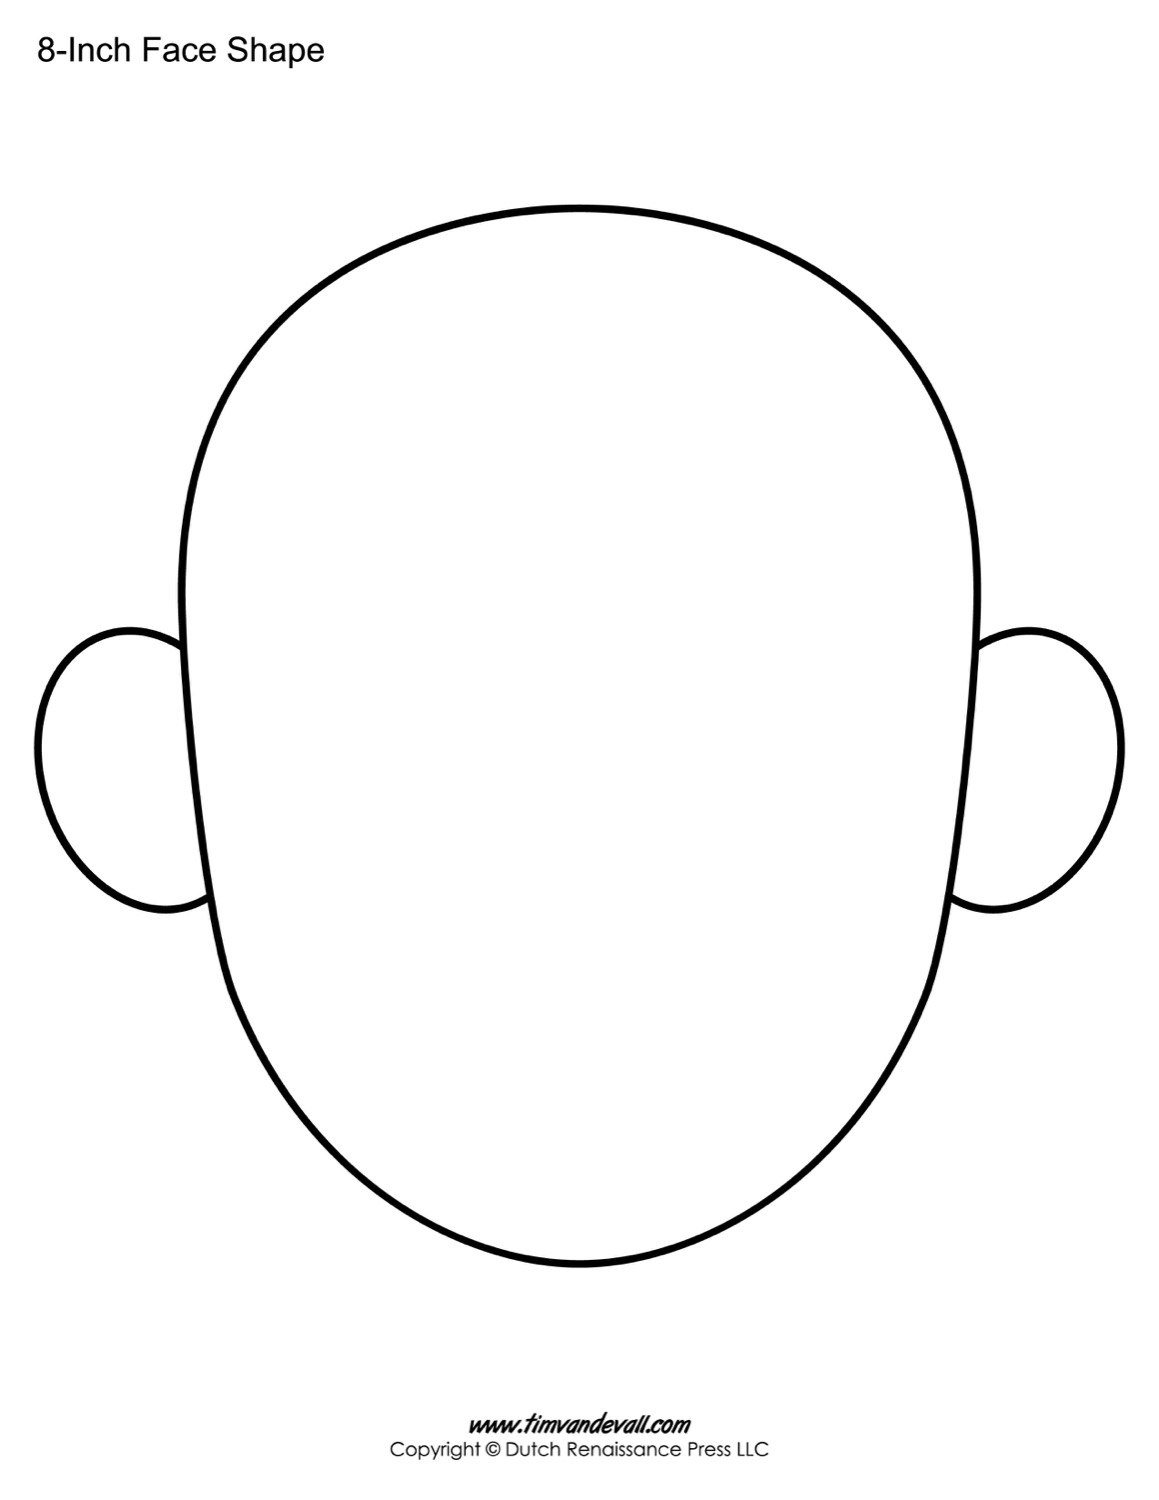 Blank Face Templates  Printable Face Shapes For Kids Within Blank Face Template Preschool